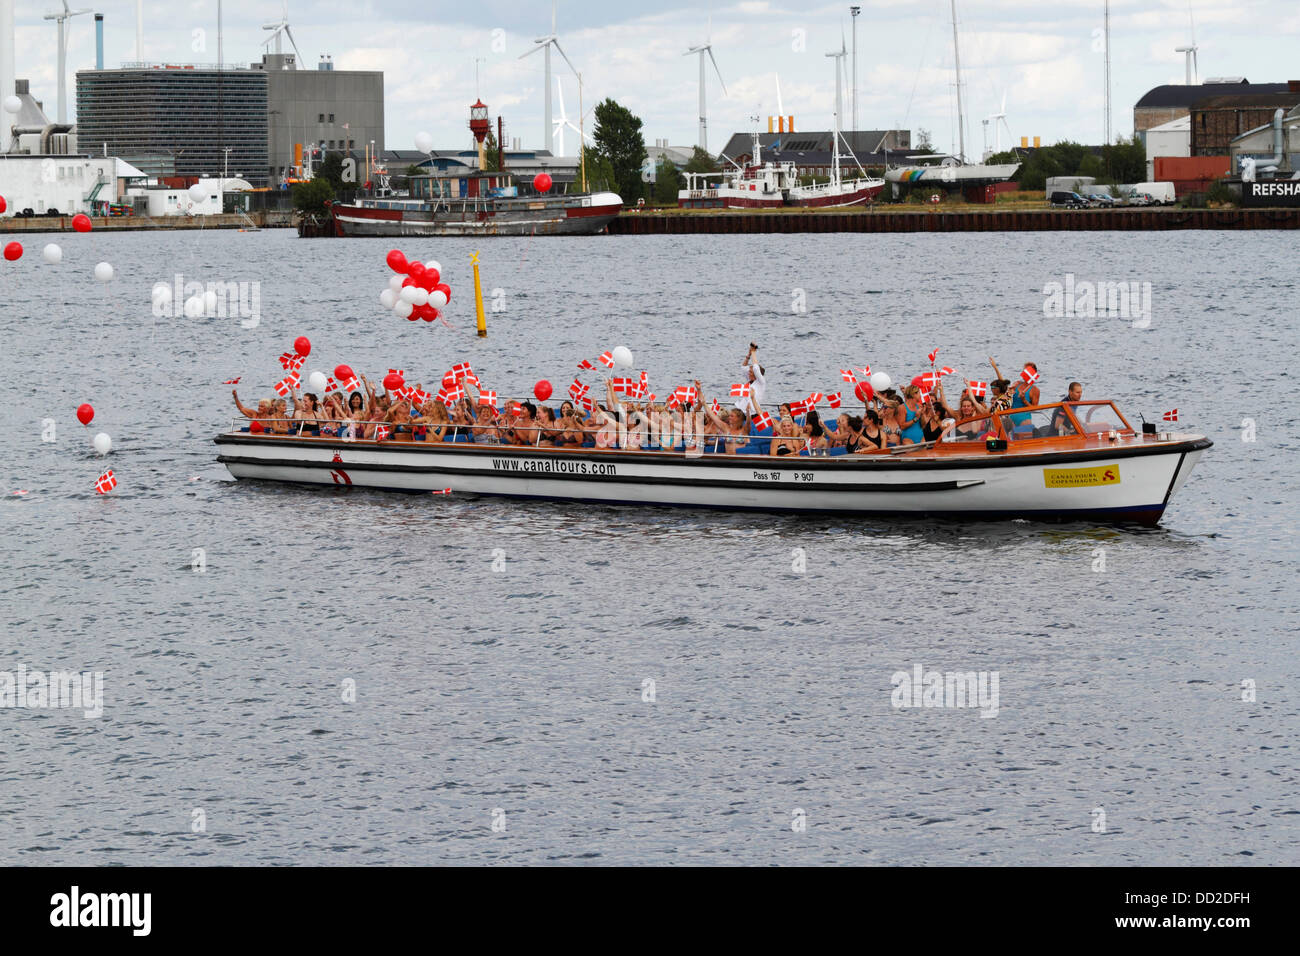 Copenhagen, Denmark, August 23, 2013. The Little Mermaid turns 100 today and Copenhagen throws her a party to celebrate - Stock Image